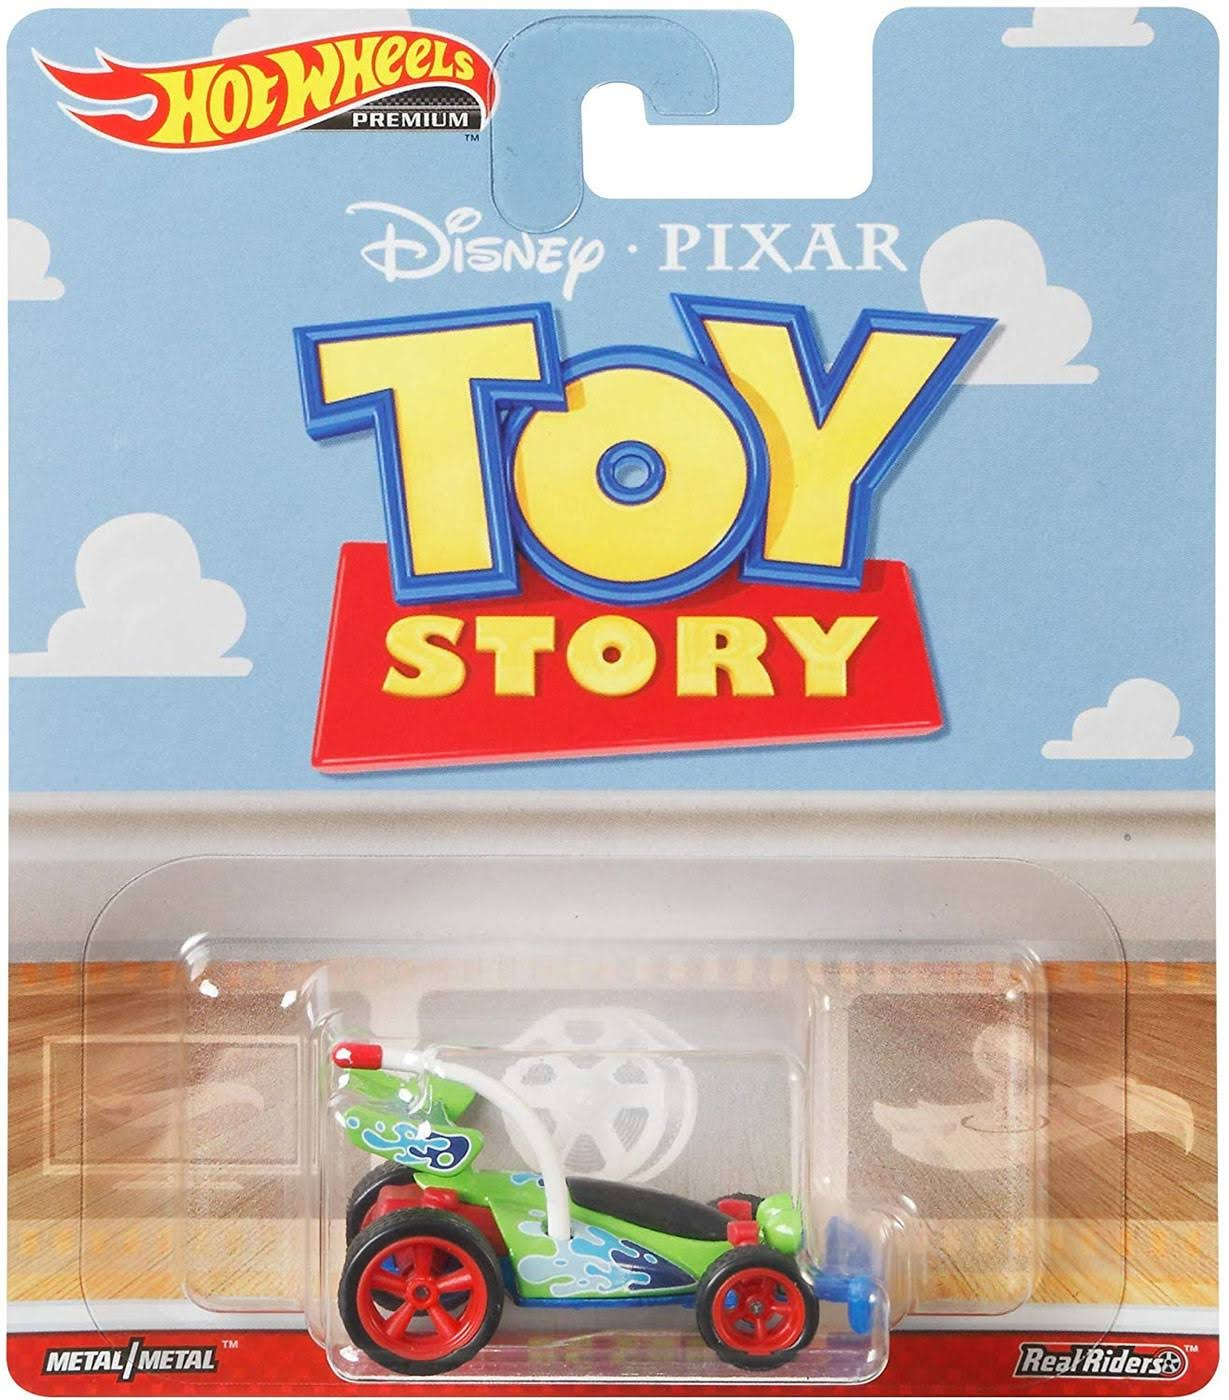 Hot Wheels Premium Disney Pixar Toy Story RC Car